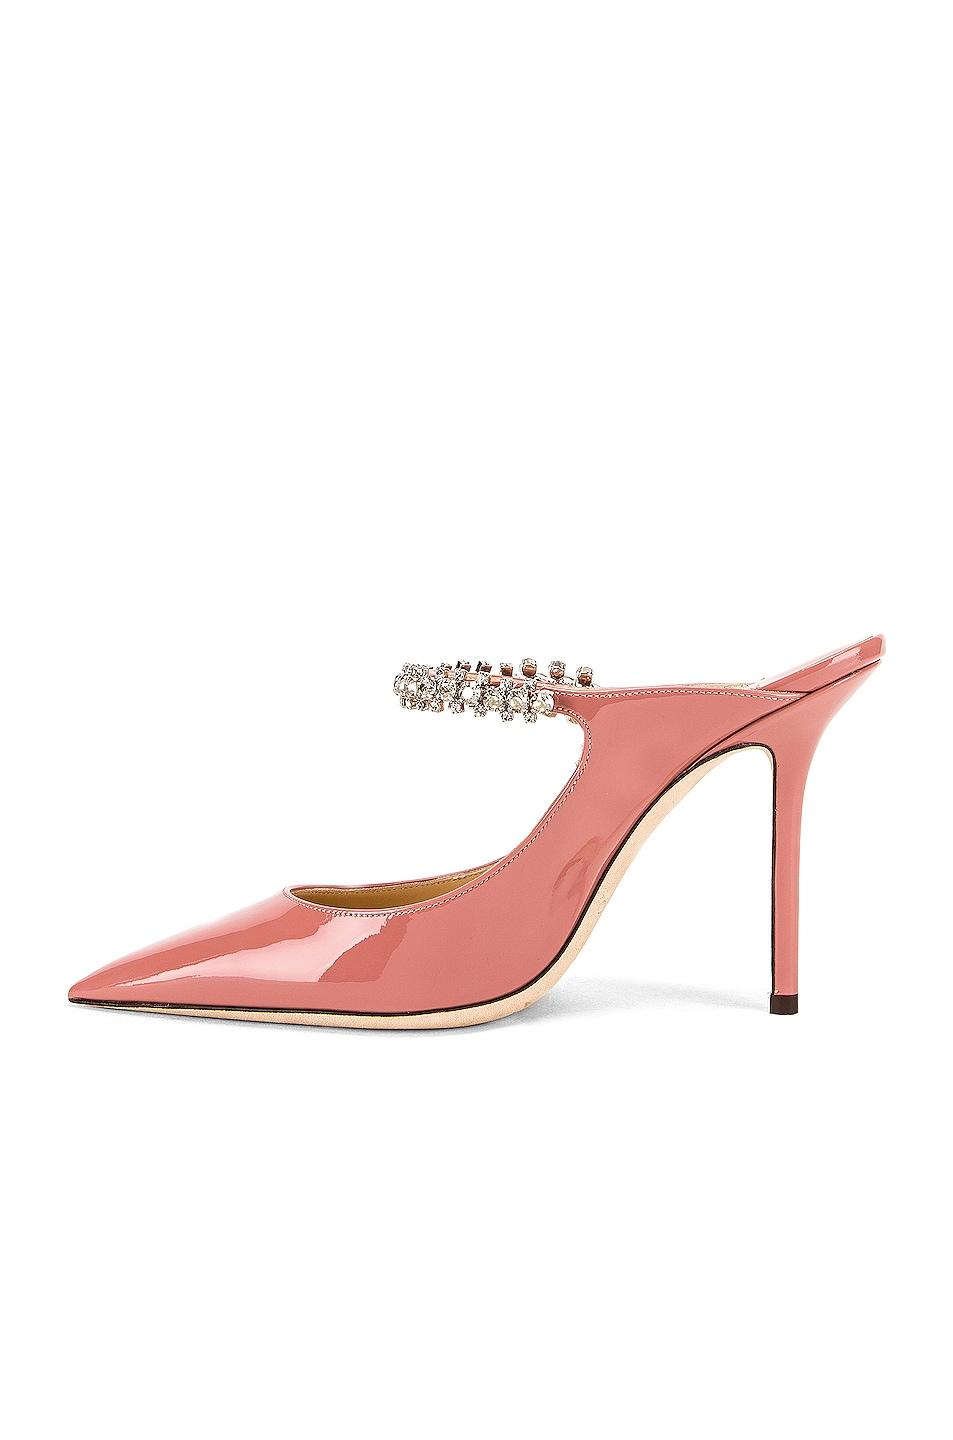 Image 5 of Jimmy Choo Bing 100 Patent Leather Mule in Blush